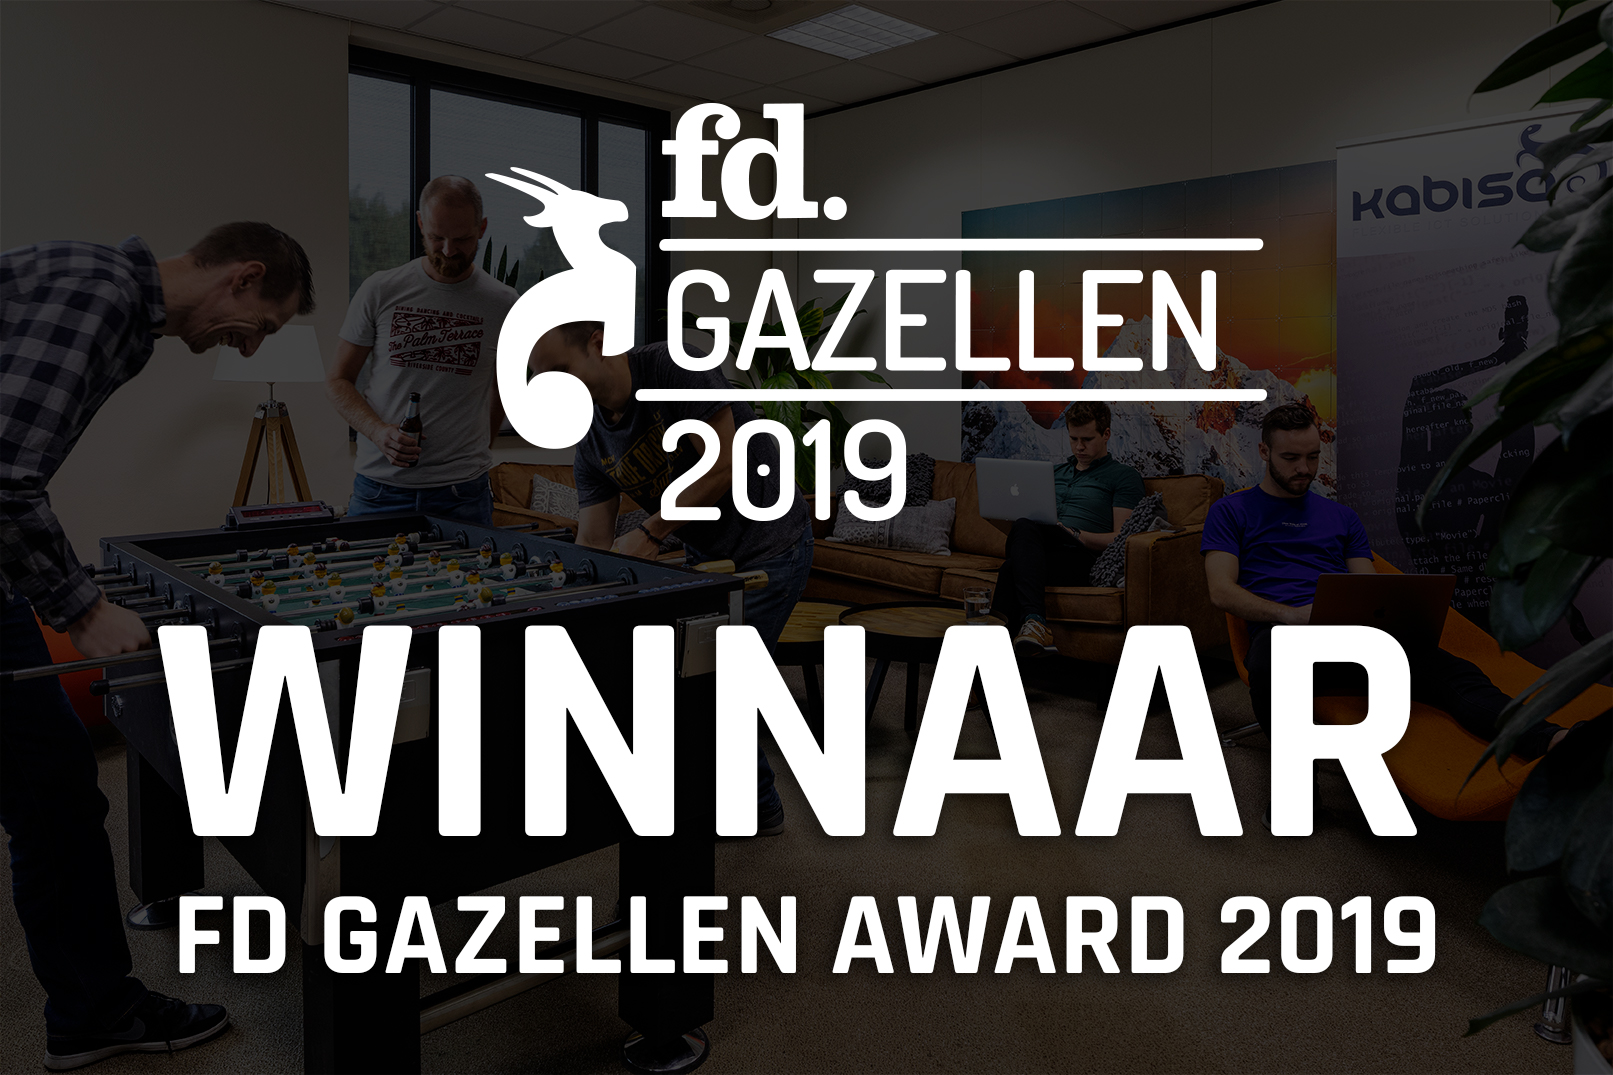 winnaar fd gazellenaward 2019